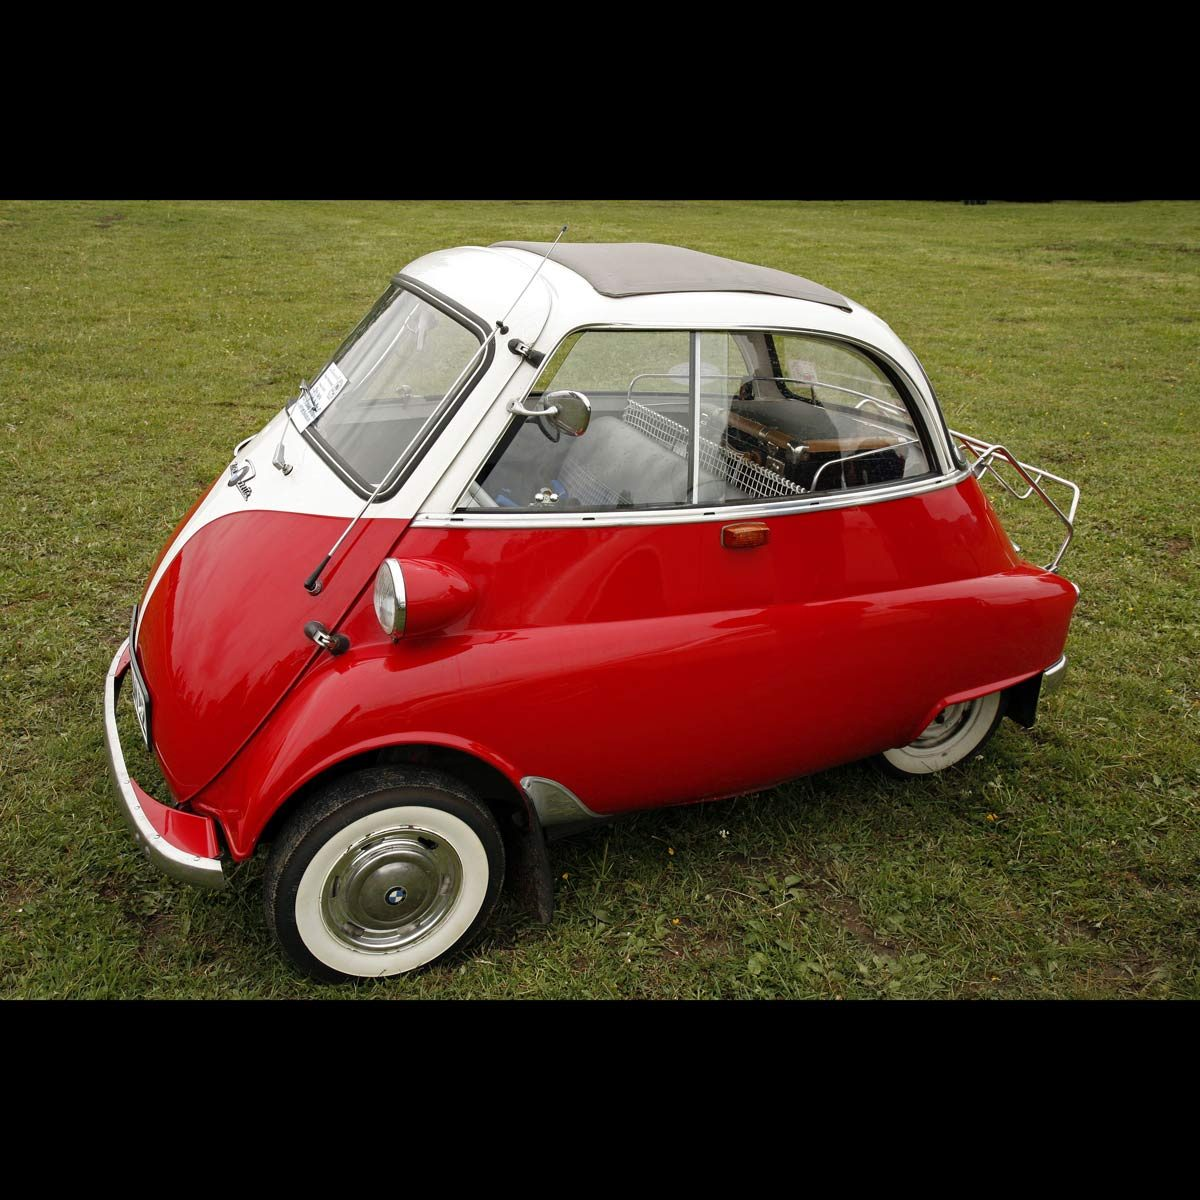 BMW Isetta, red and white small oddly shaped car